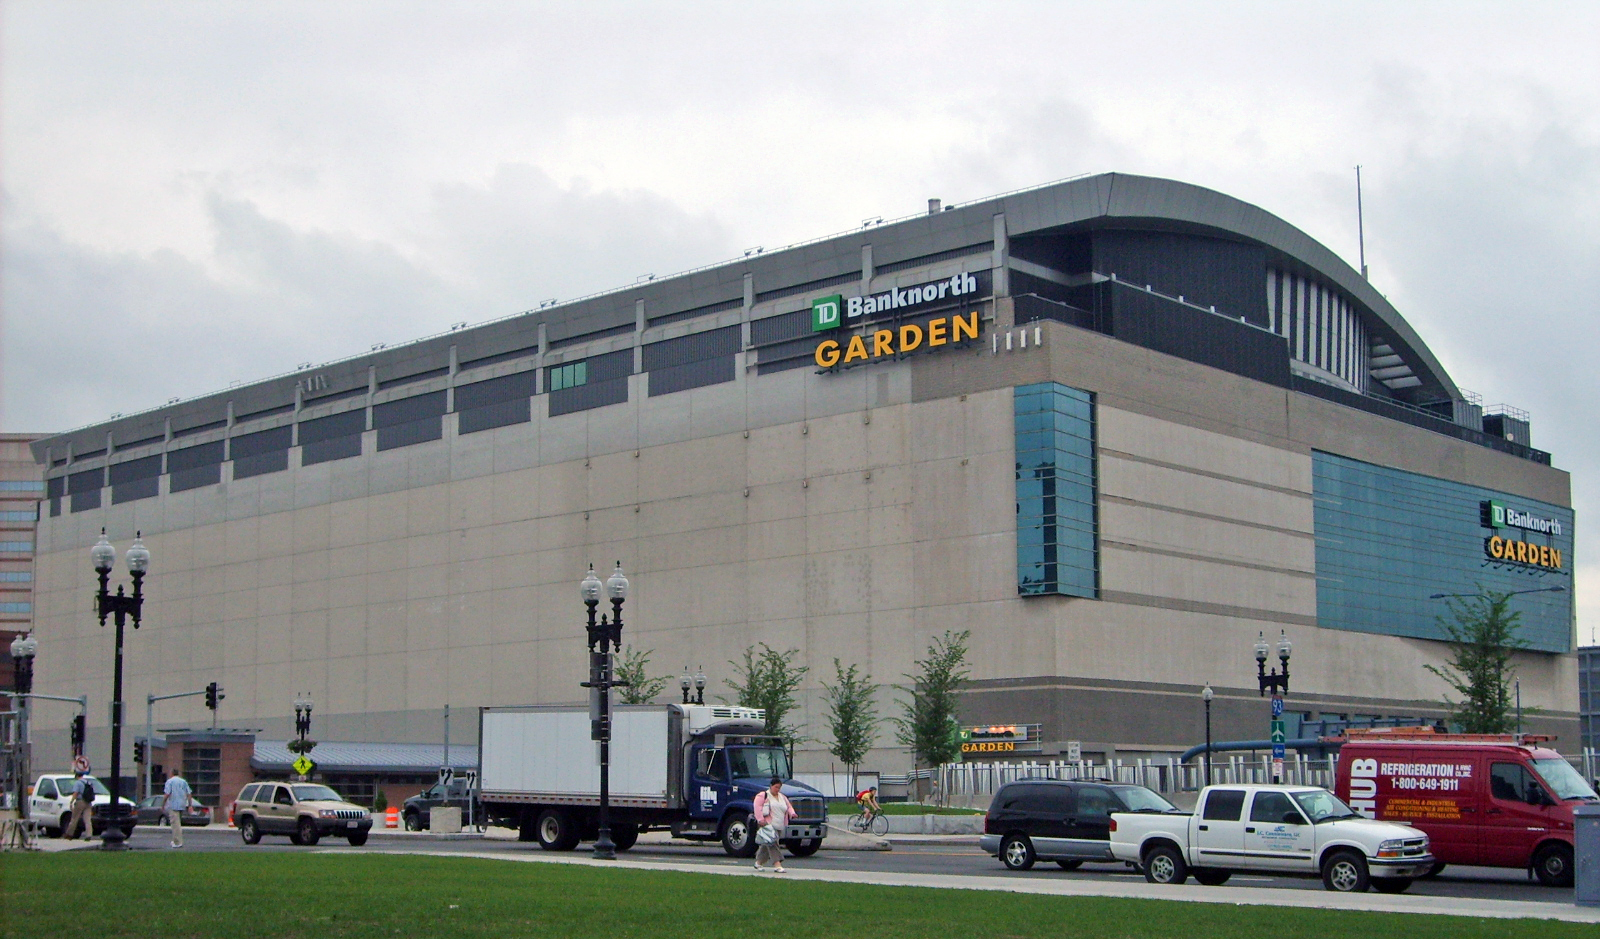 Pin Td Garden Boston Celtics On Pinterest